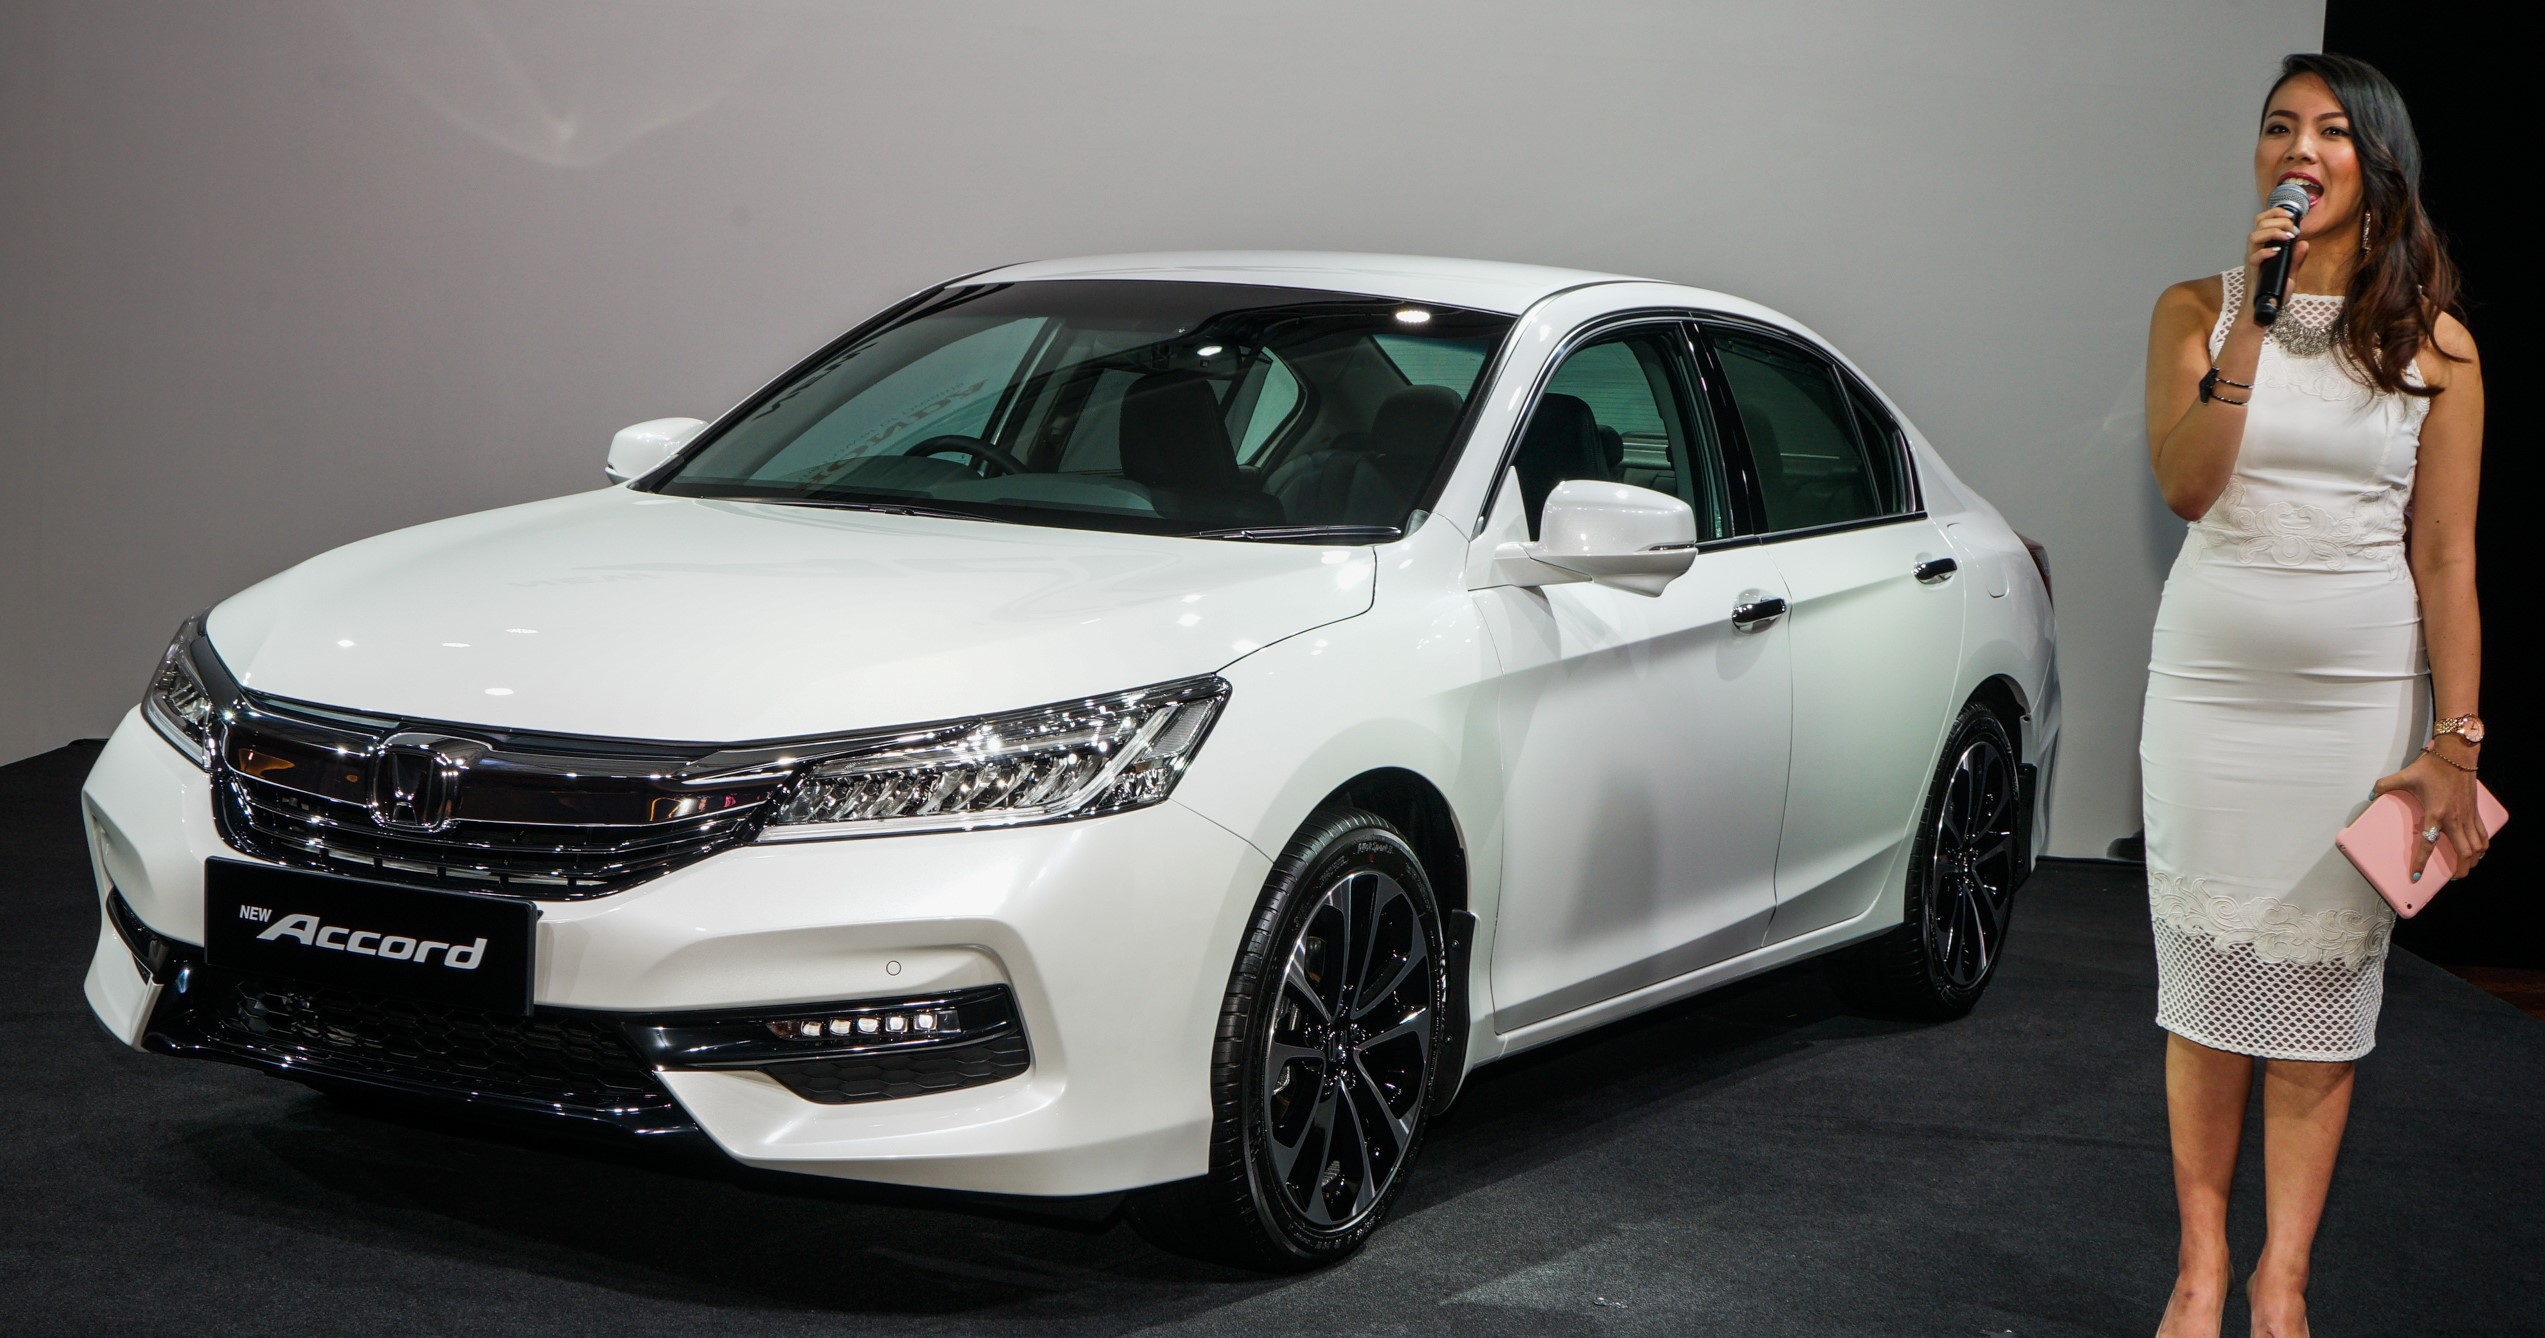 Honda Civic Wilmington Nc >> New Accord Price | Autos Post